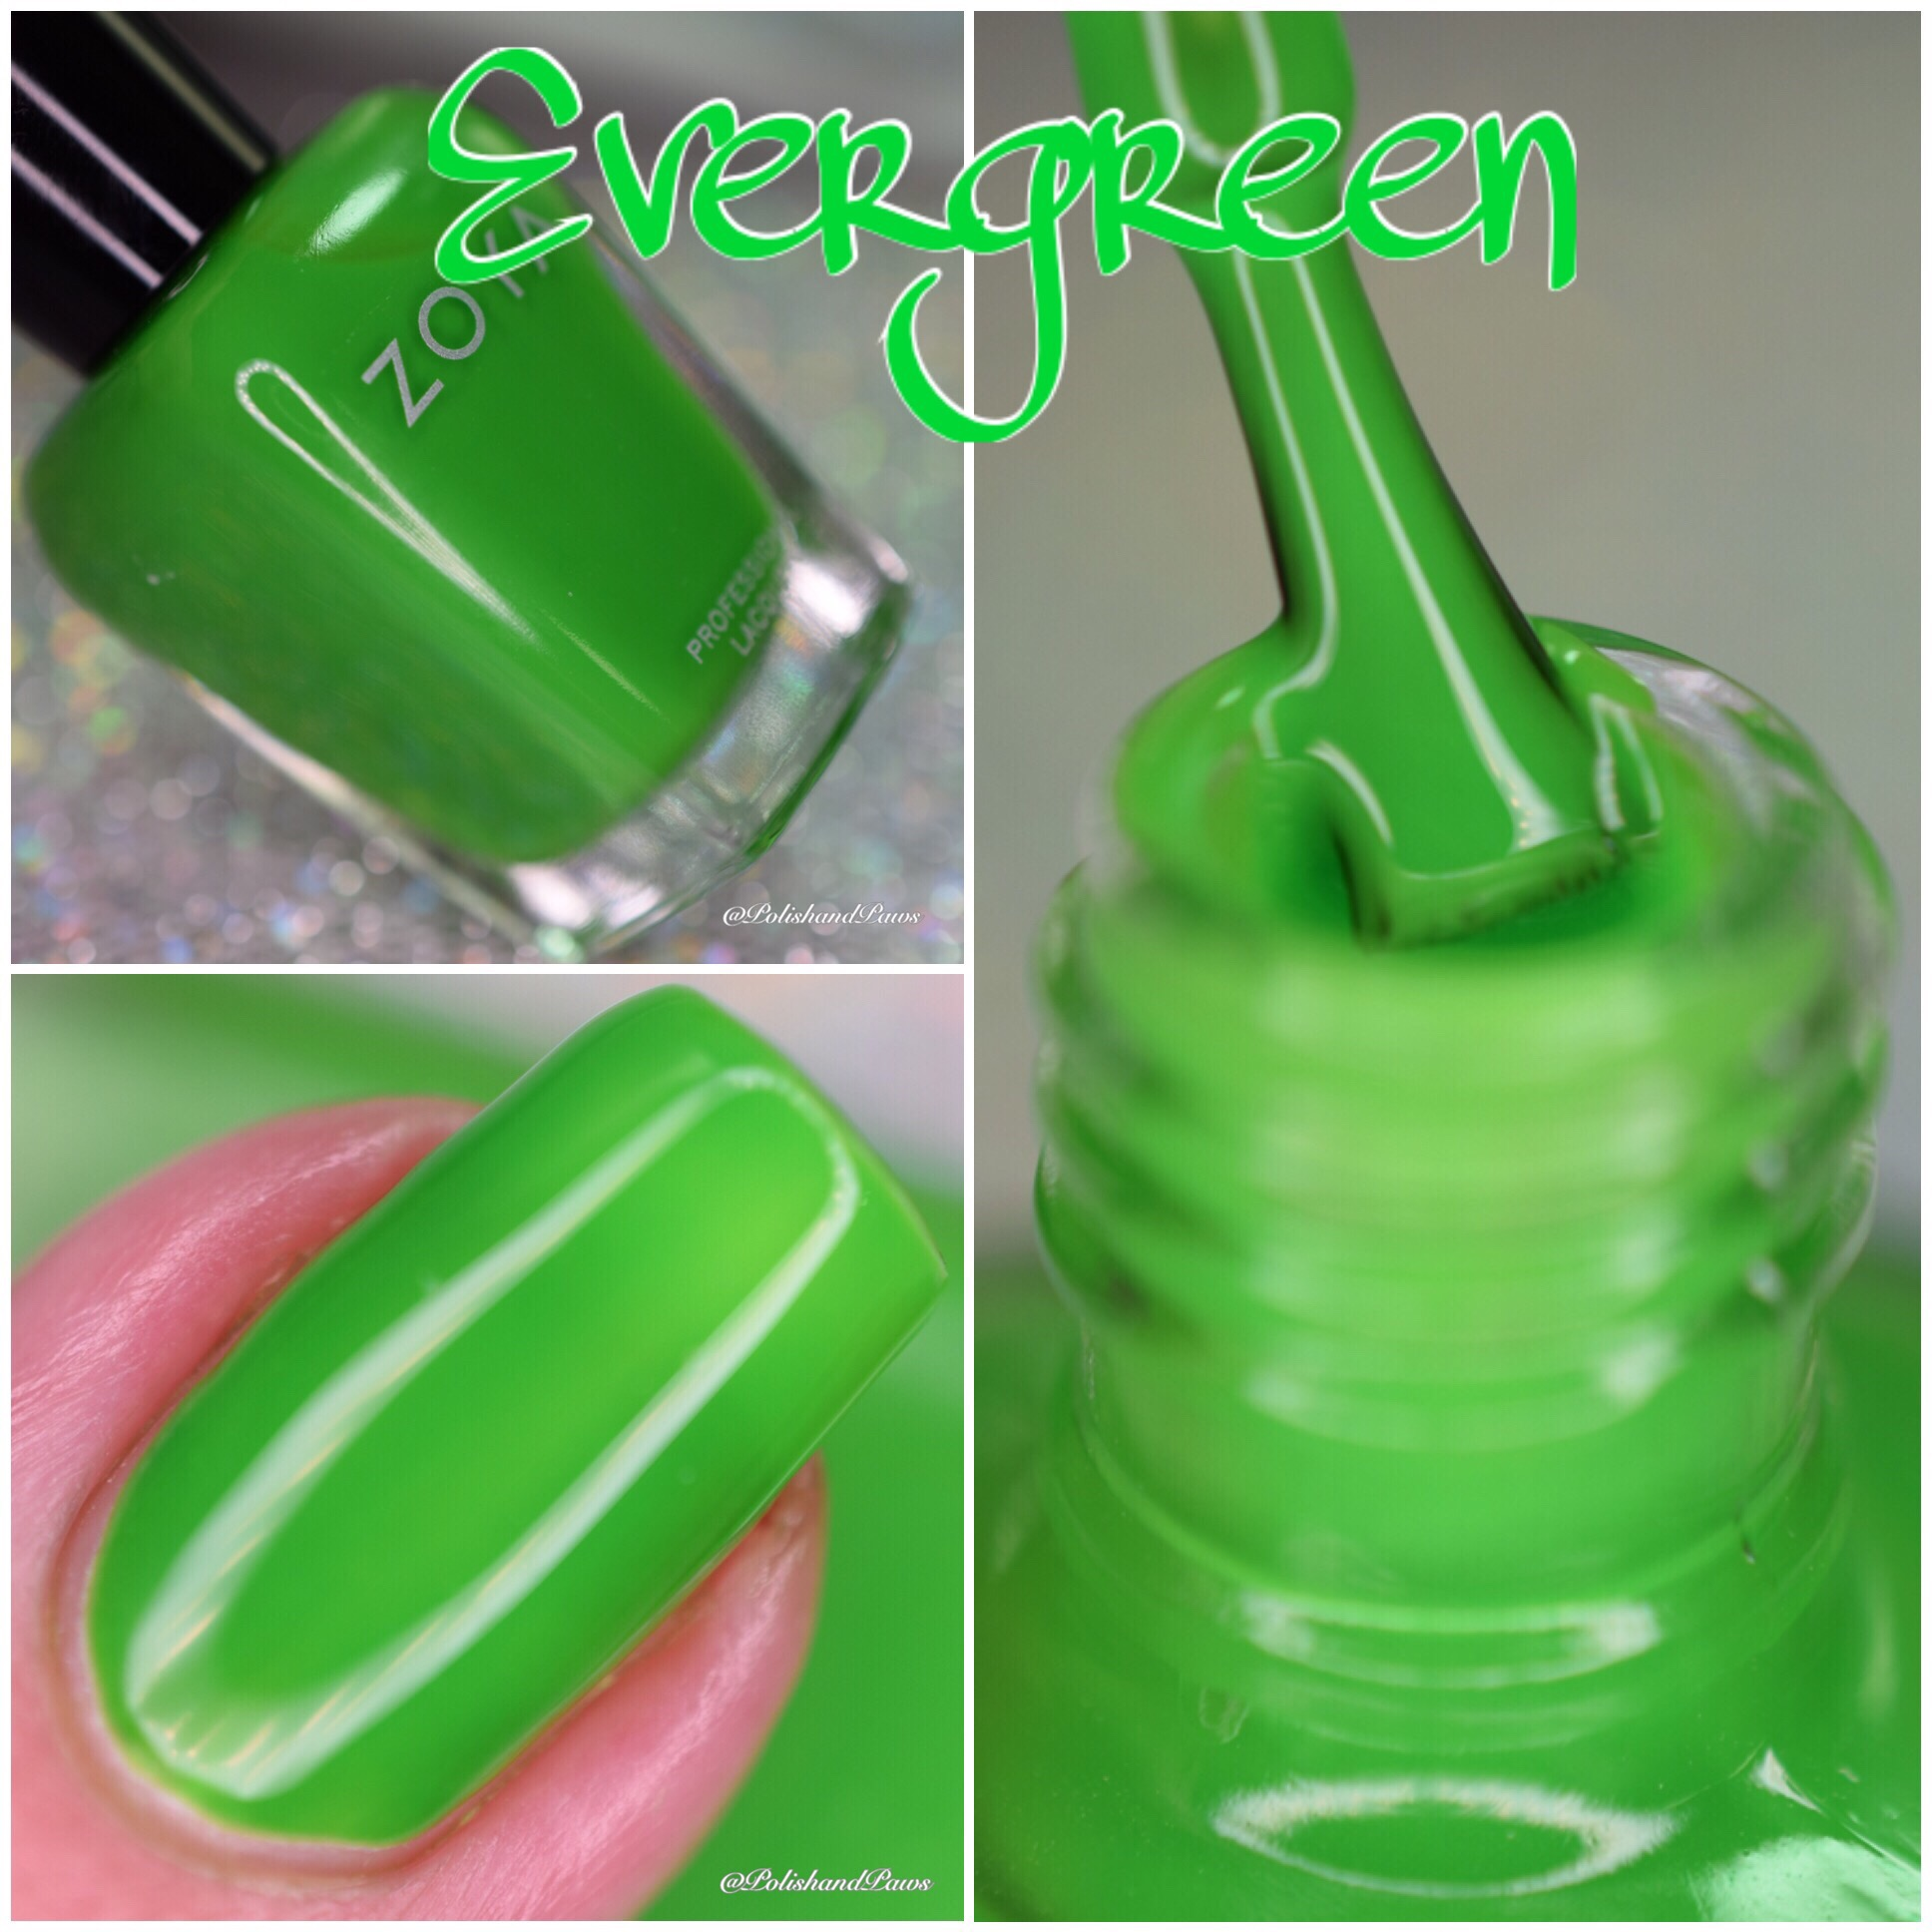 Zoya Evergreen UltraBrite Neons